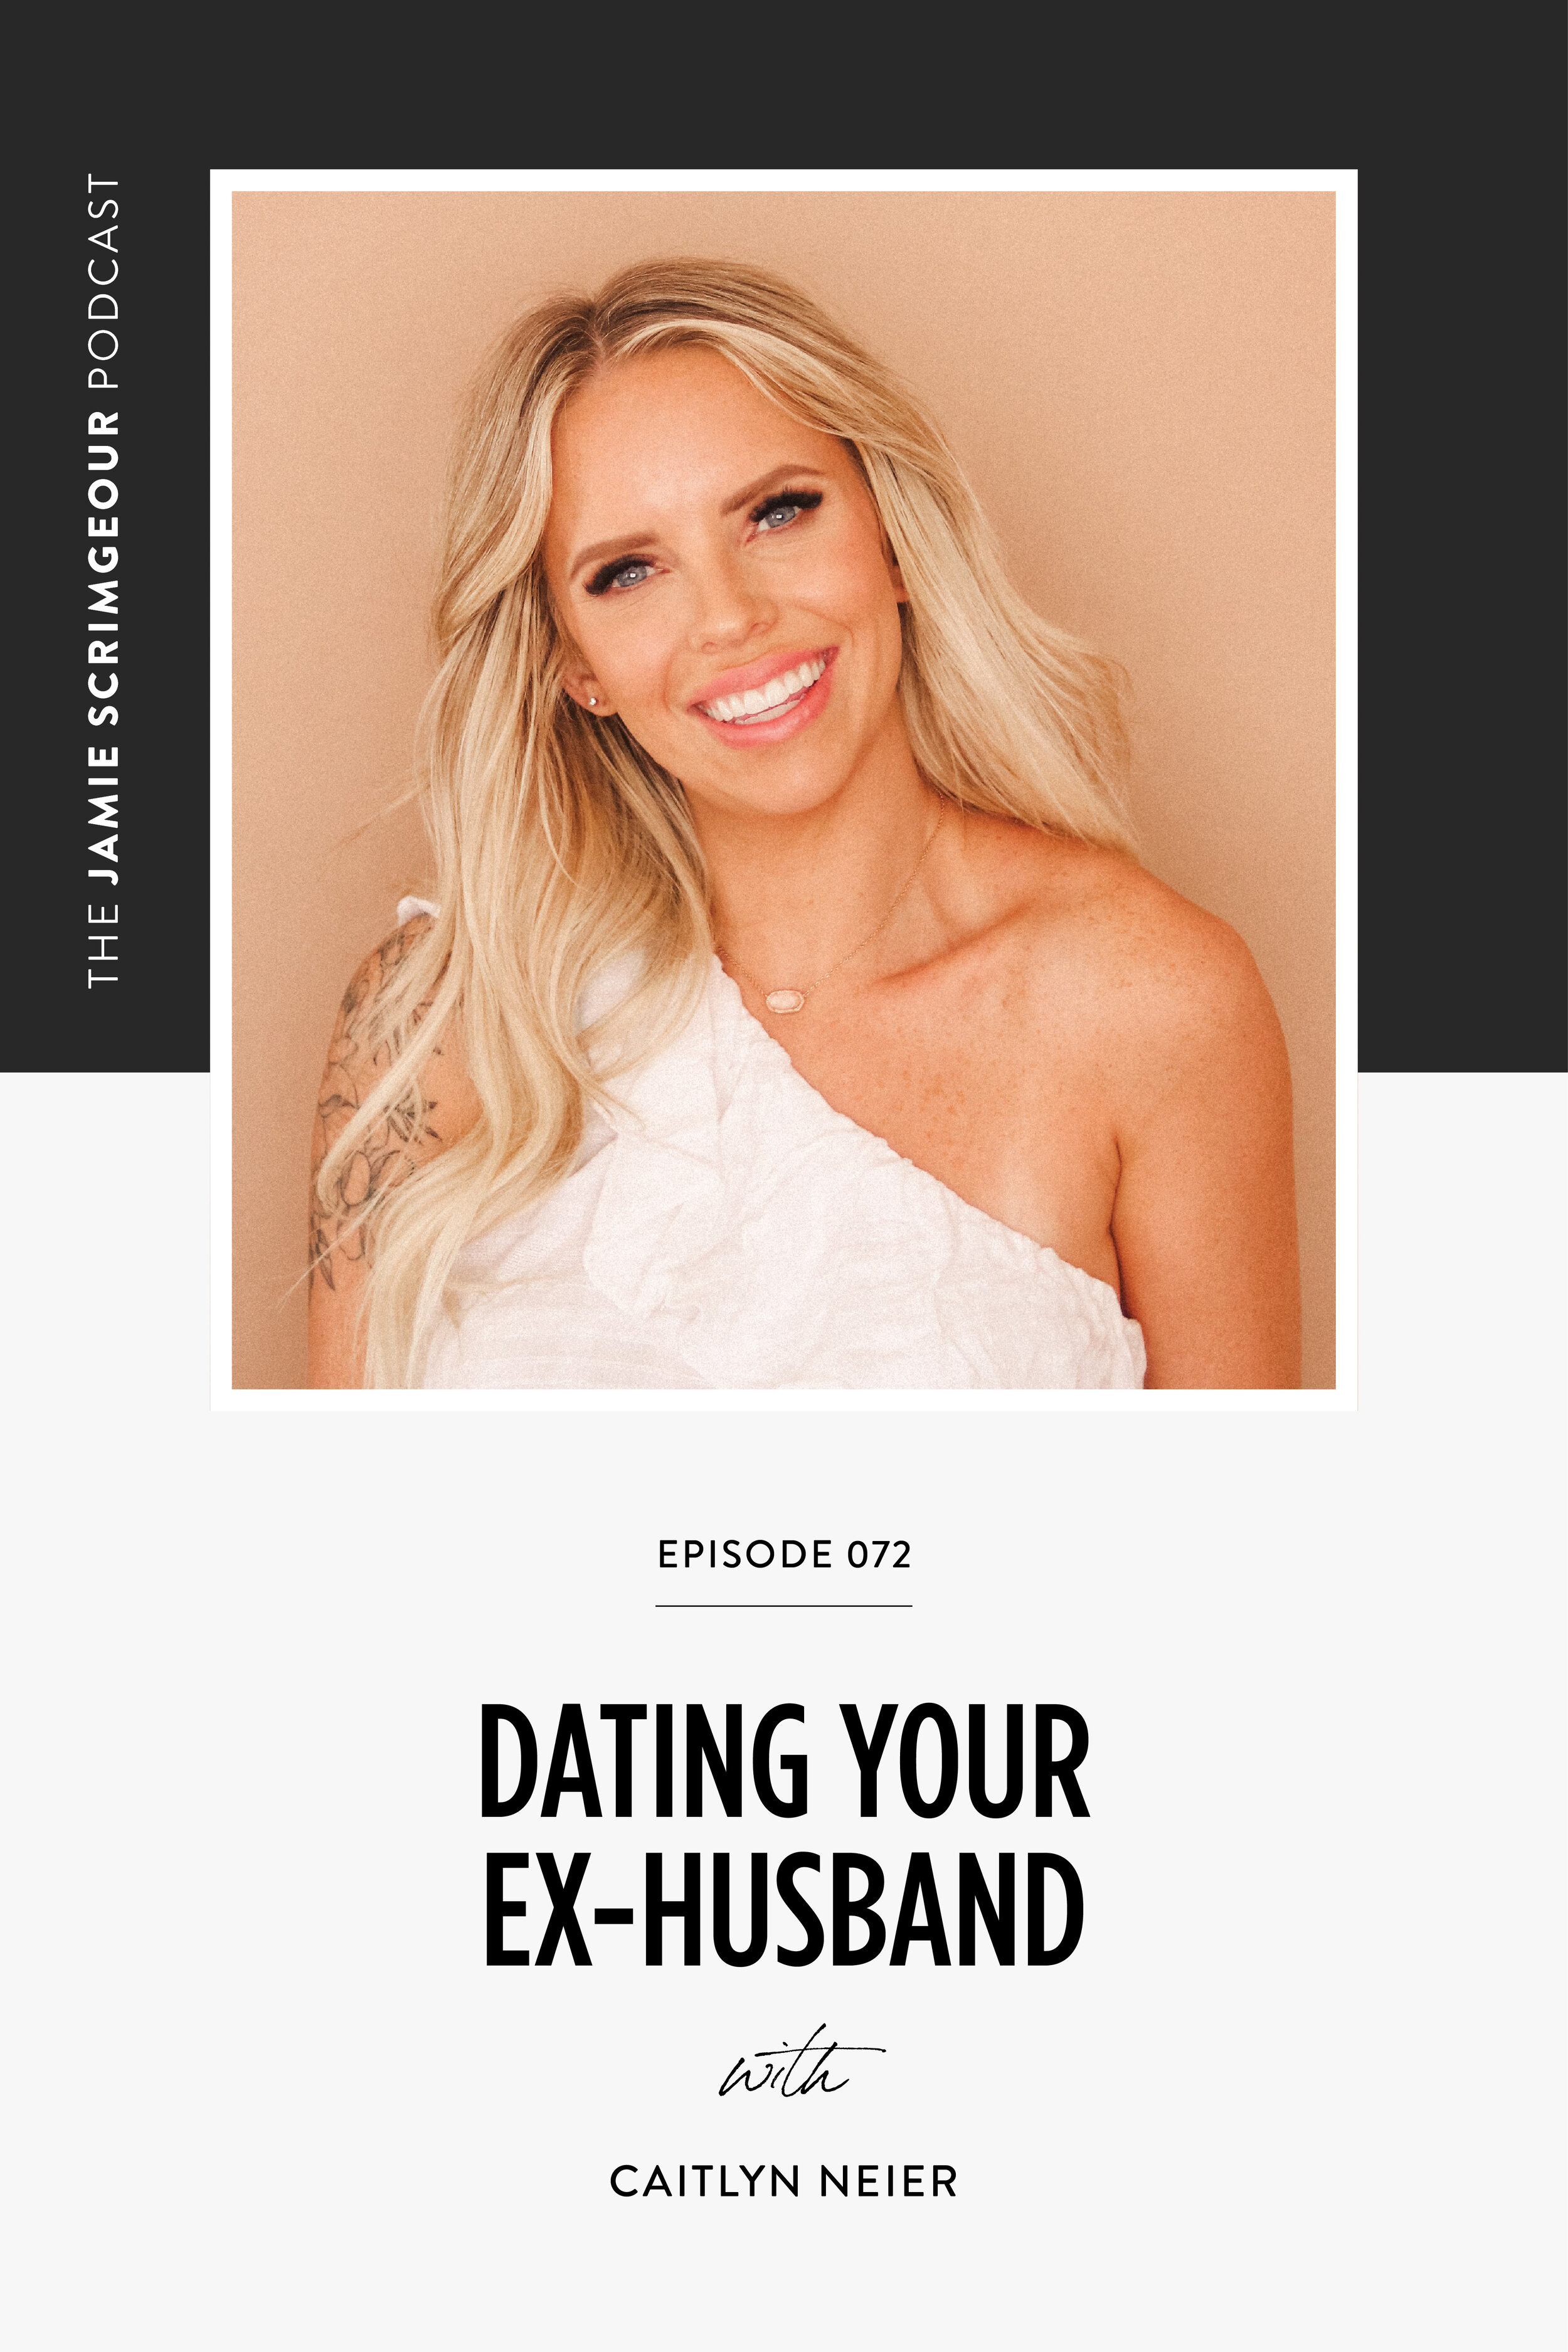 The Jamie Scrimgeour Podcast Episode 072 - Dating Your Ex Husband with Caitlyn Neier